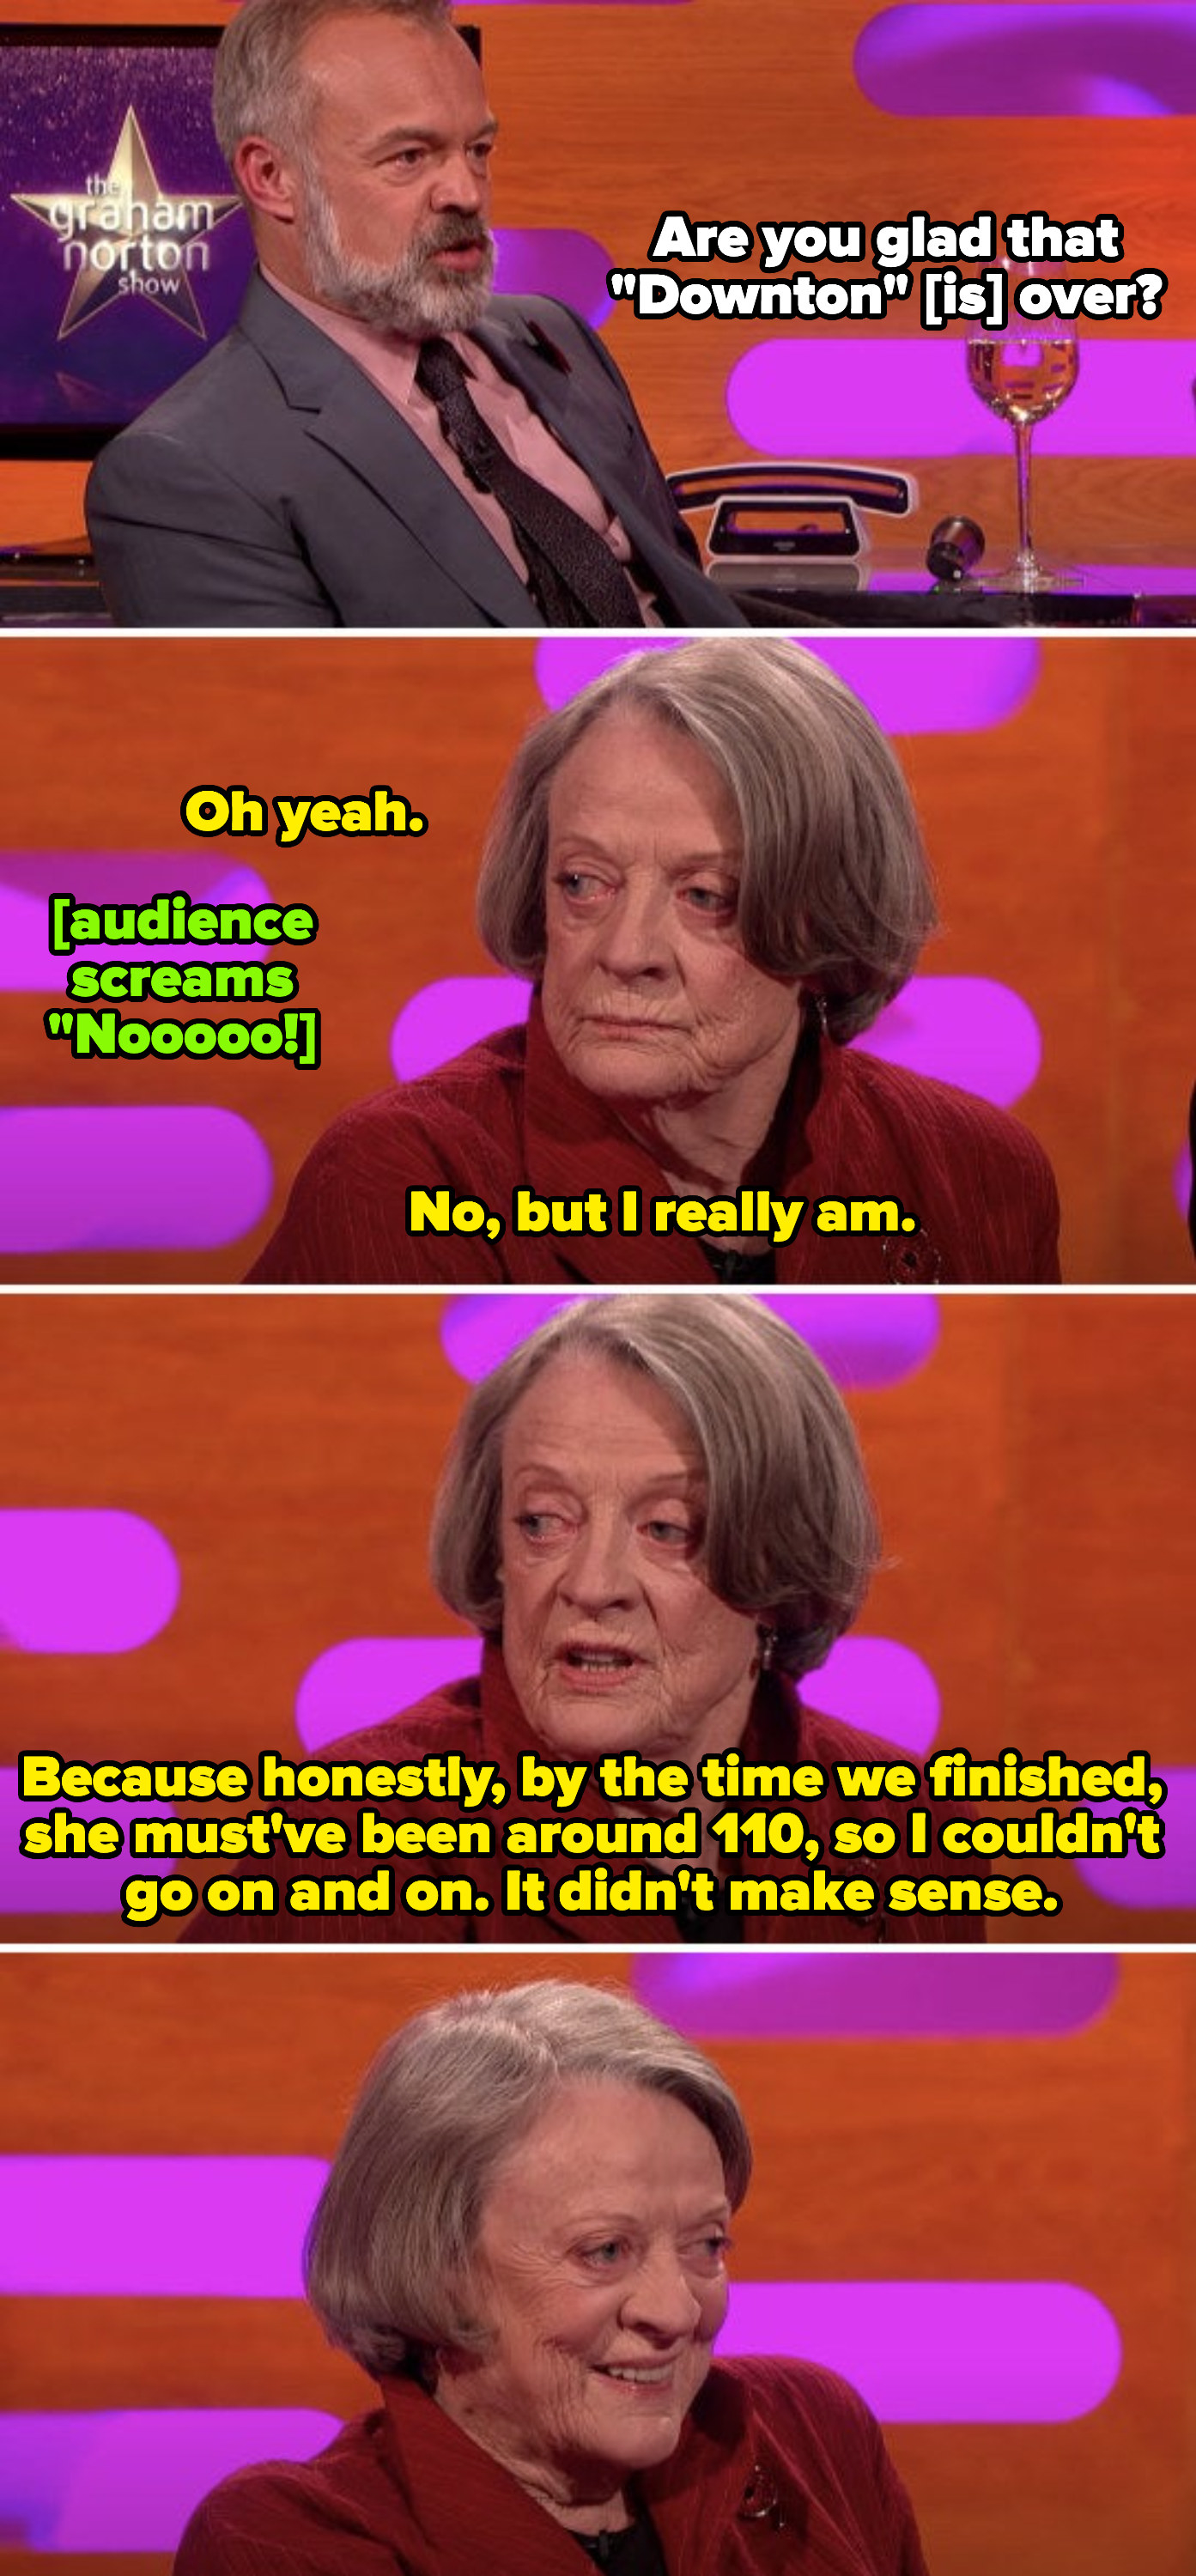 """Maggie Smith revealing her excitement about """"Downton Abbey"""" being over because her character was really, really old, and it didn't make sense to continue on"""